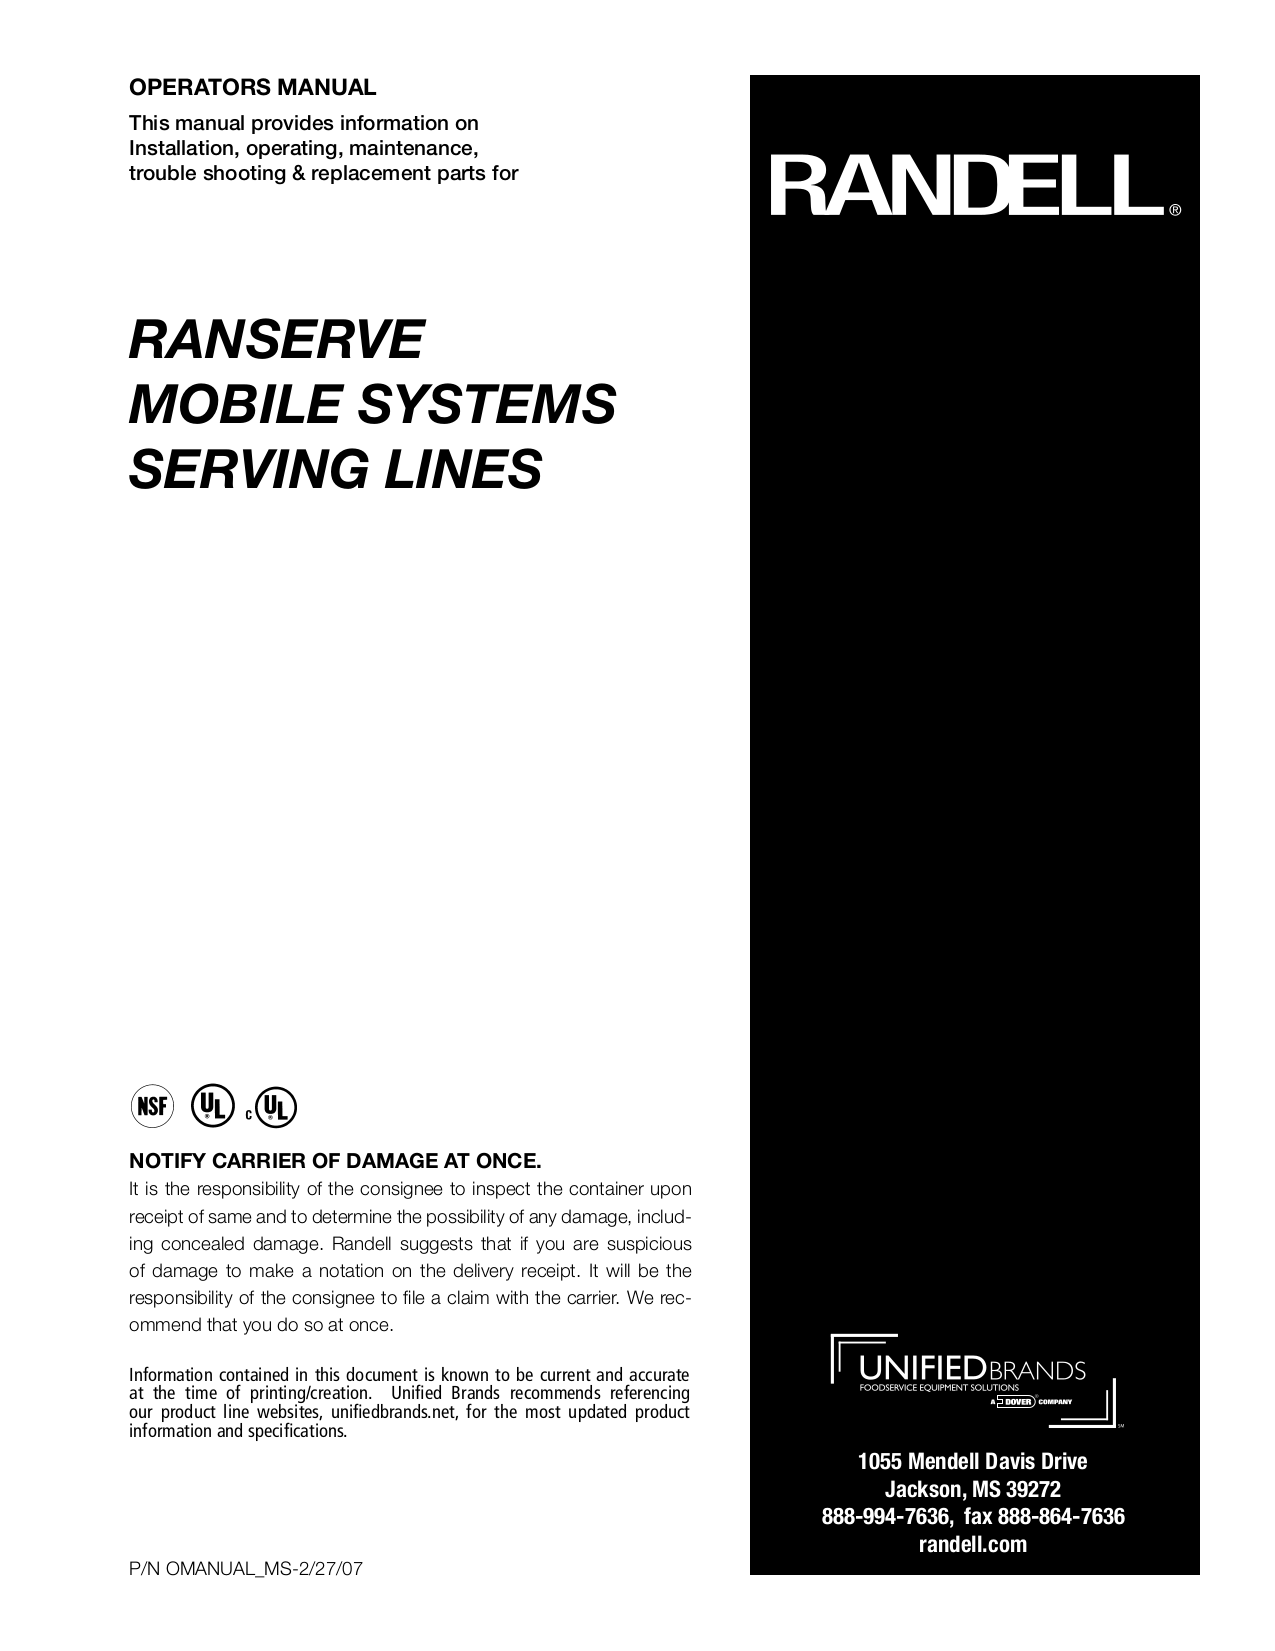 pdf for Randell Other 14G IC-3S Food Holding Units manual